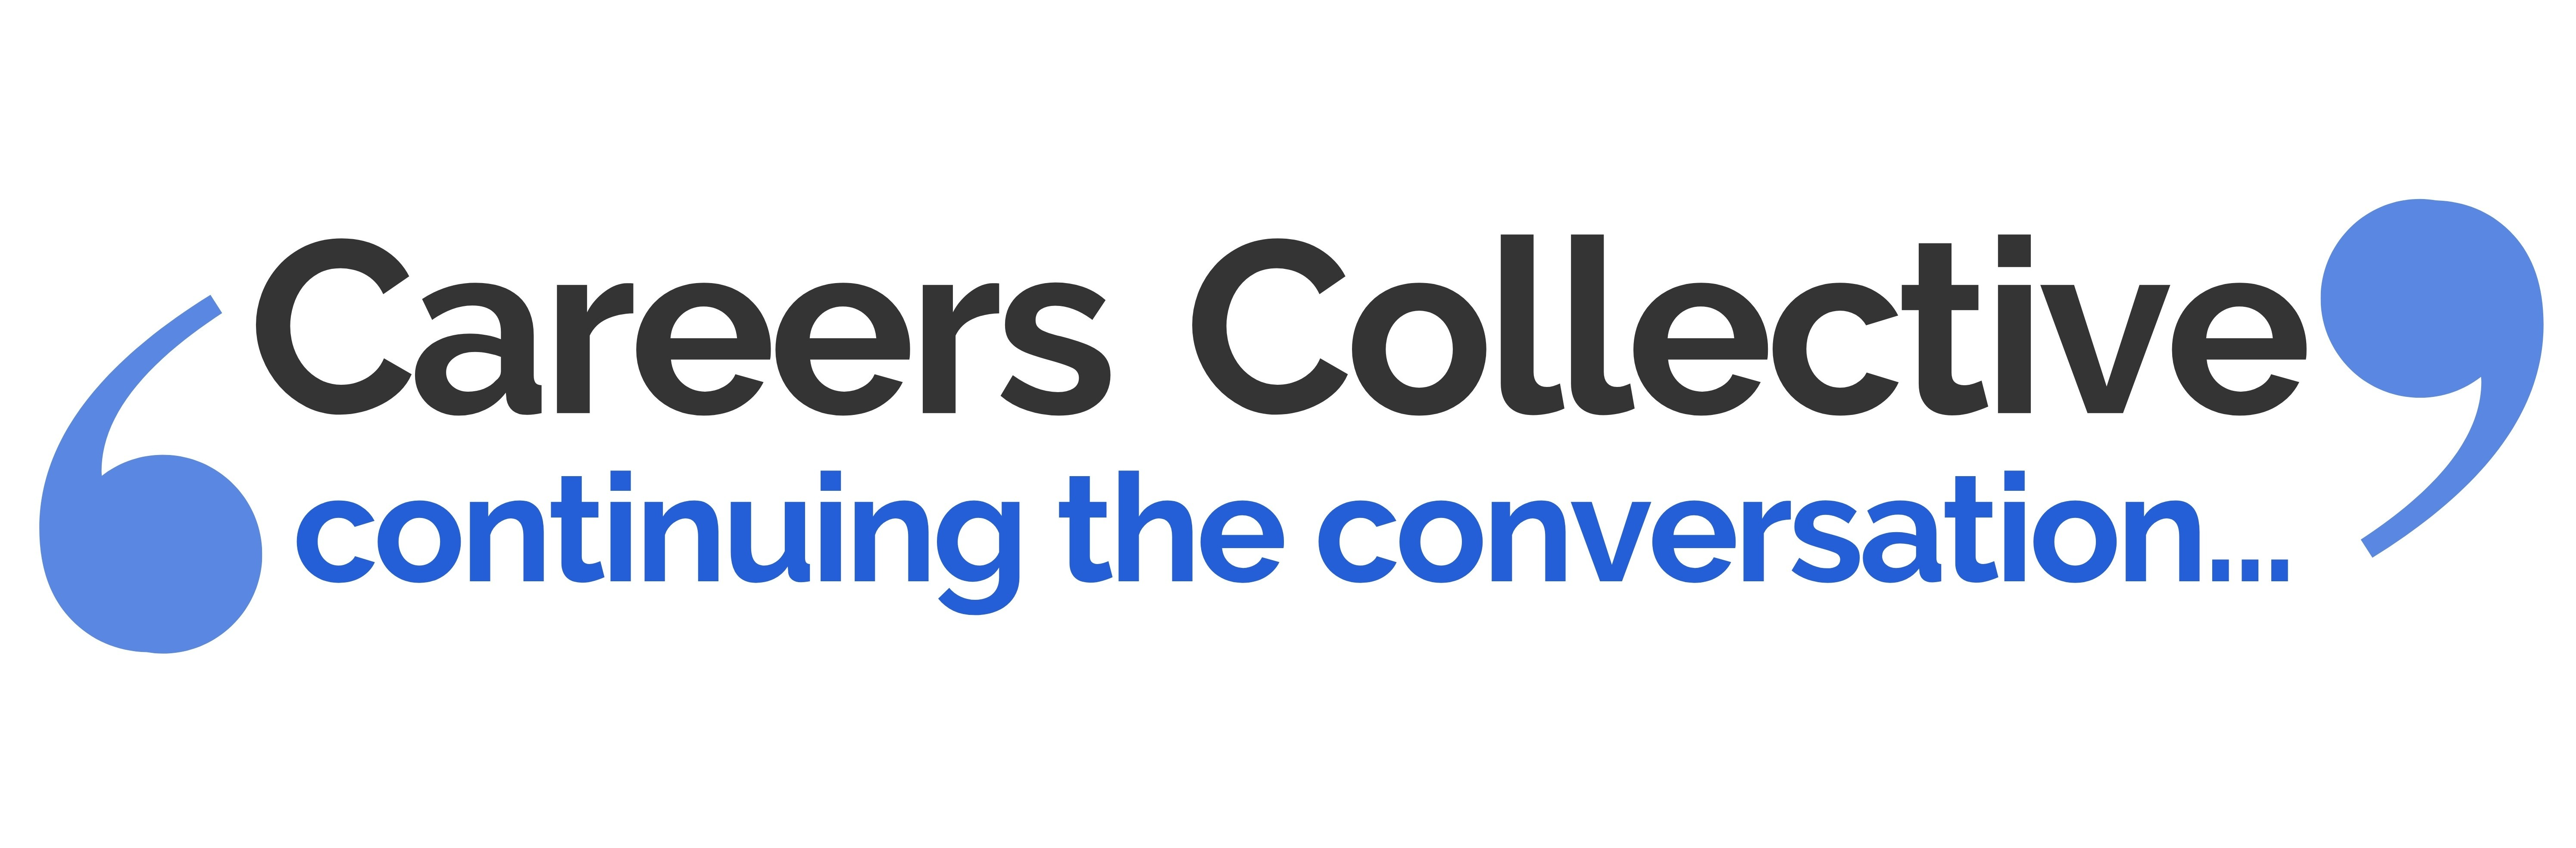 Careers Collective